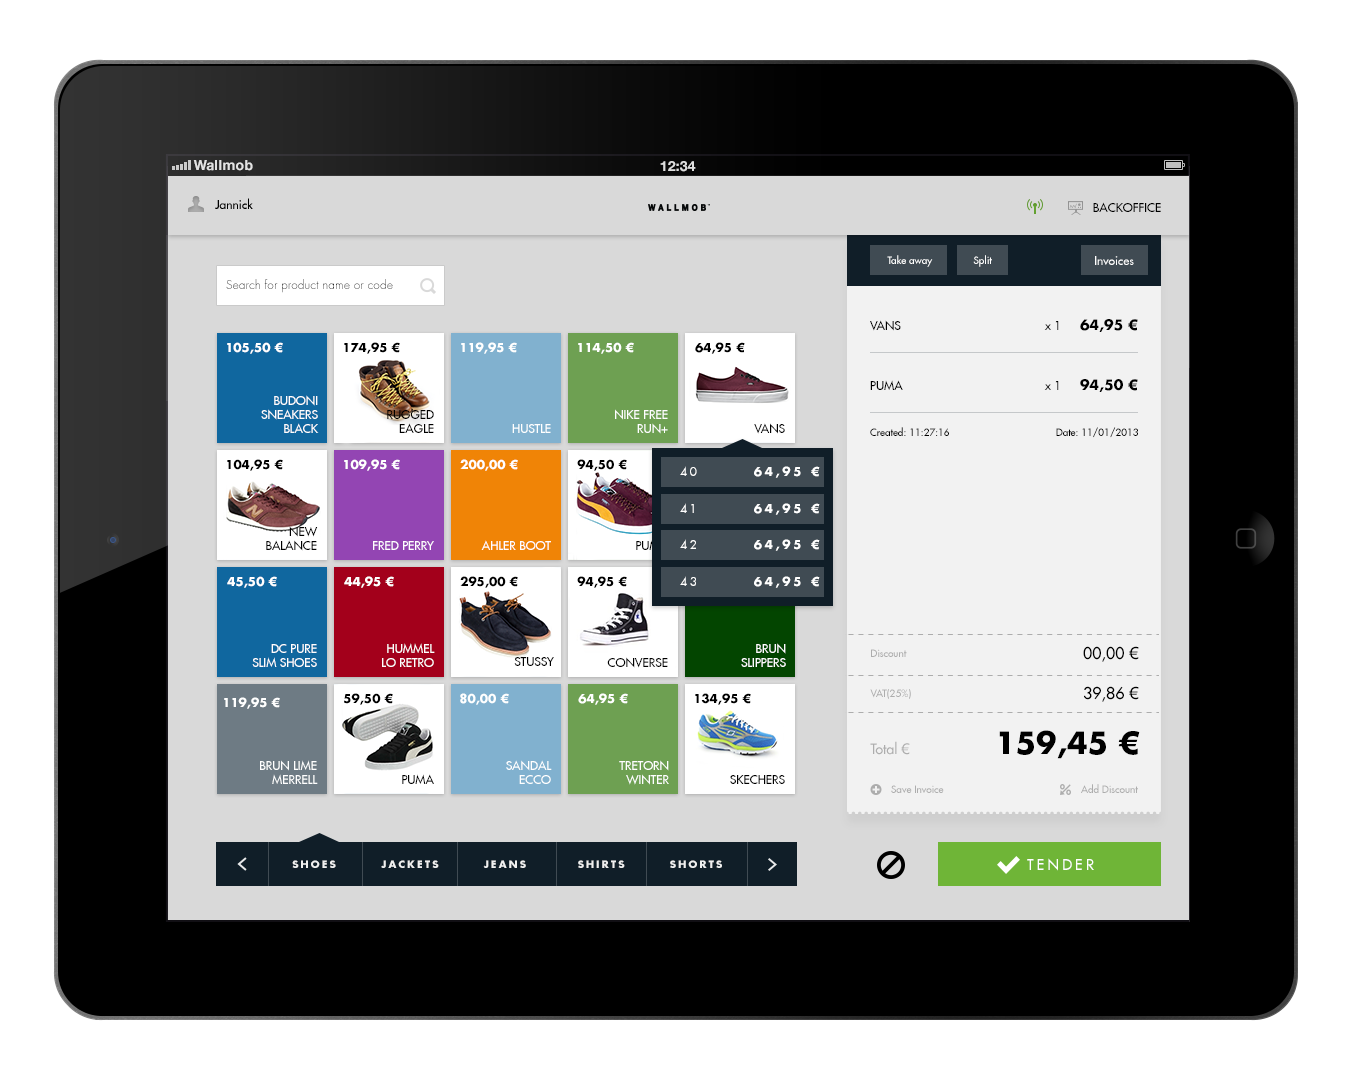 Wallmob Point Of Sale Interfaces Graphiques